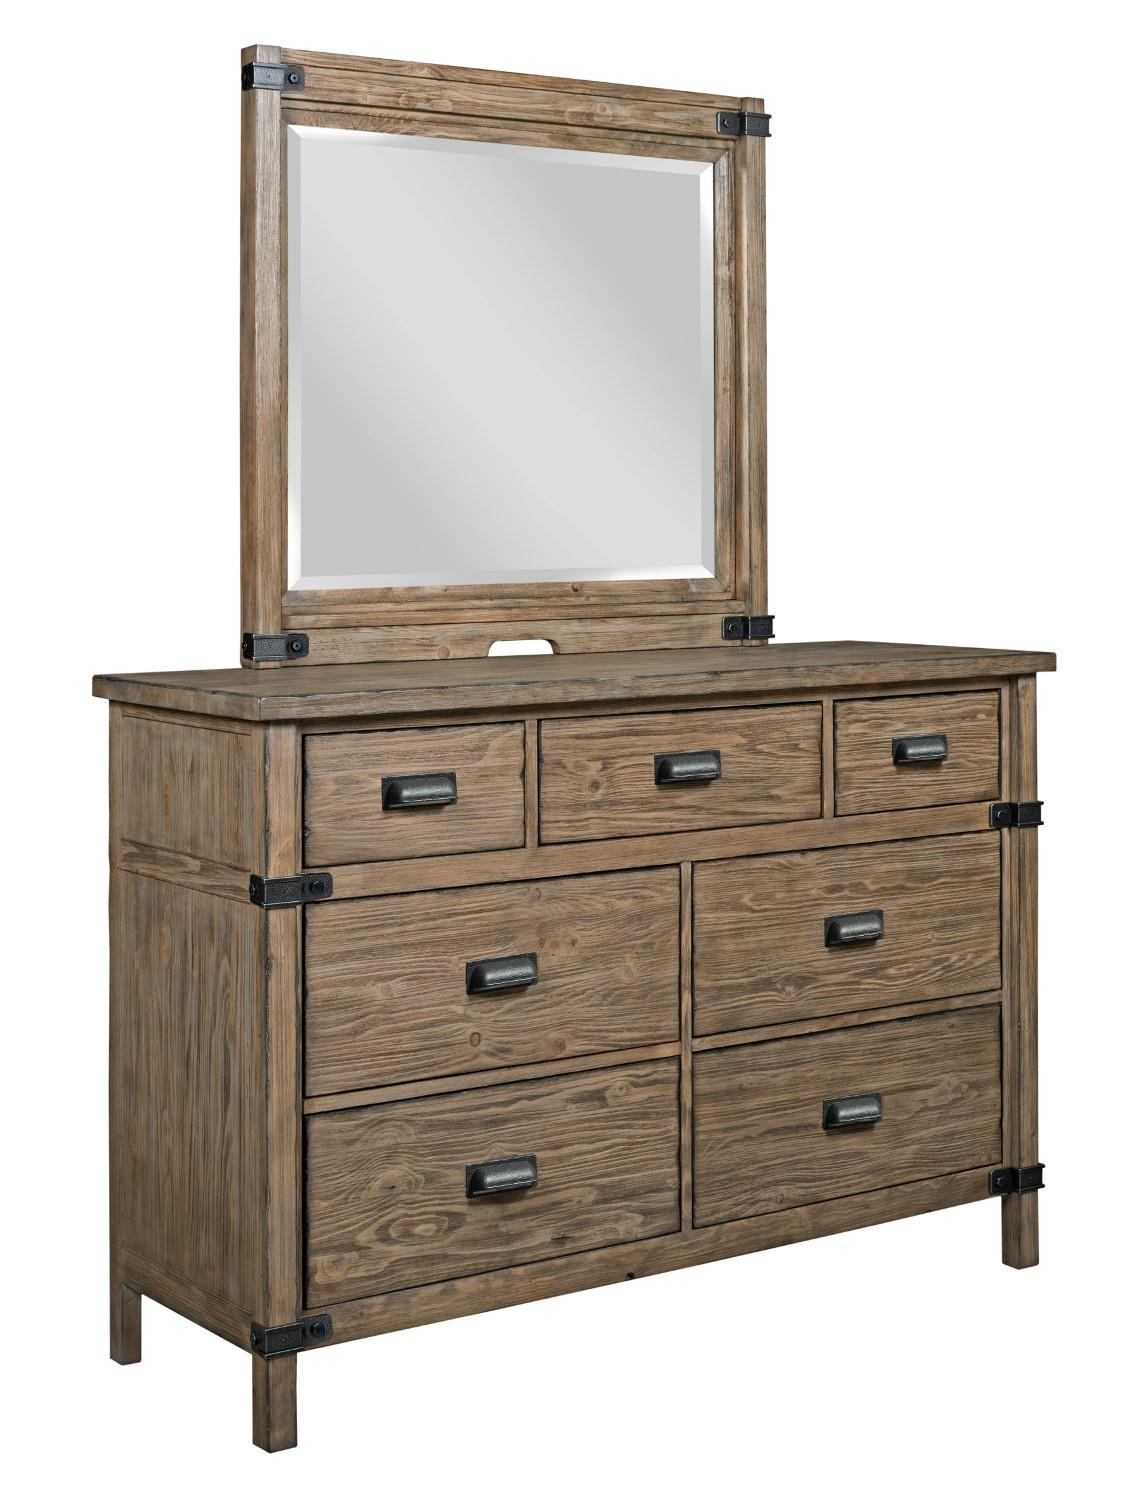 Foundry Bureau and Mirror Set by Kincaid Furniture at Johnny Janosik